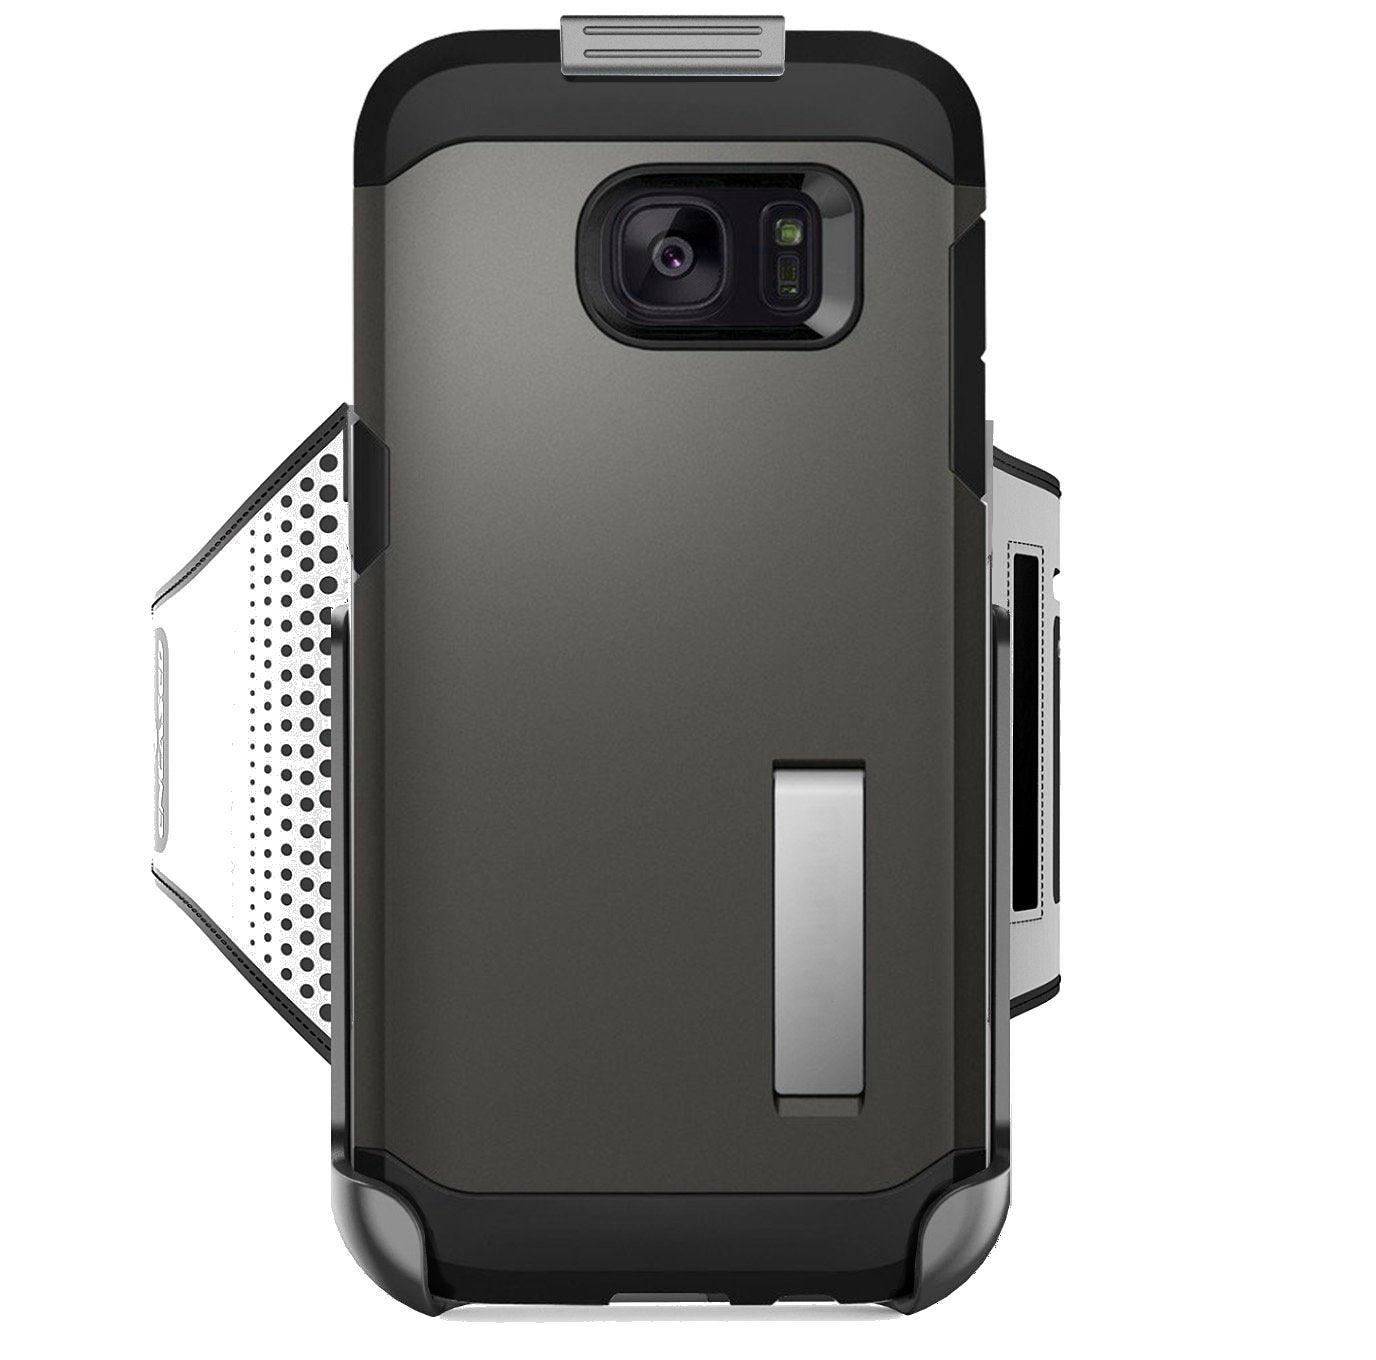 Workout Armband for Spigen Tough Armor Case - Samsung Galaxy S7 EDGE (Sweat-resistant band) Encased Products (case is not included)